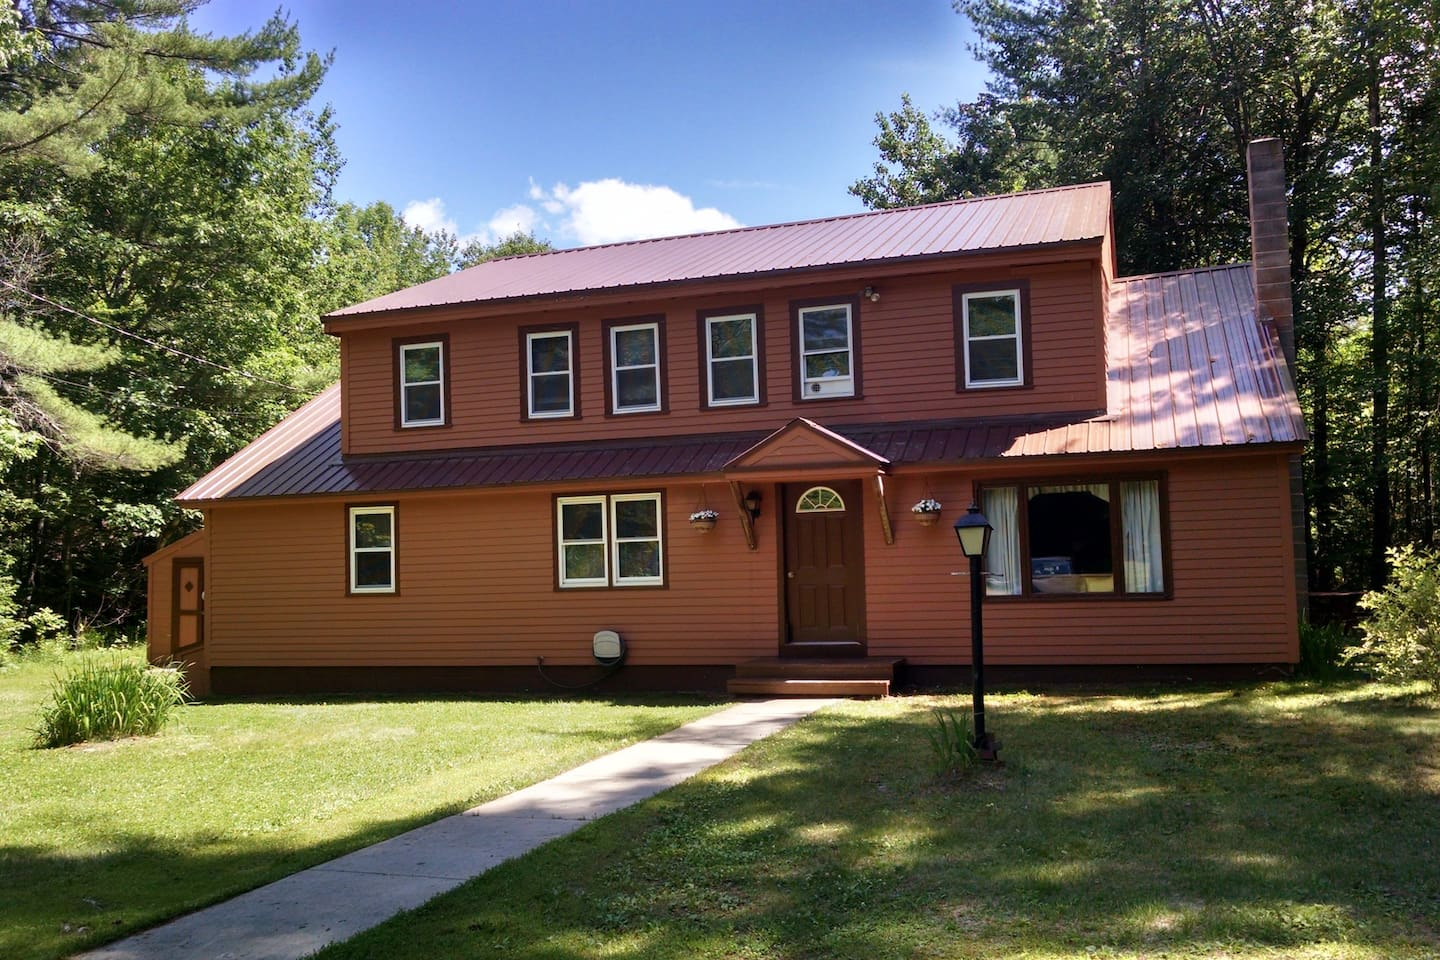 Private upstairs has two bedroom, living room with kitchenette, and bathroom.